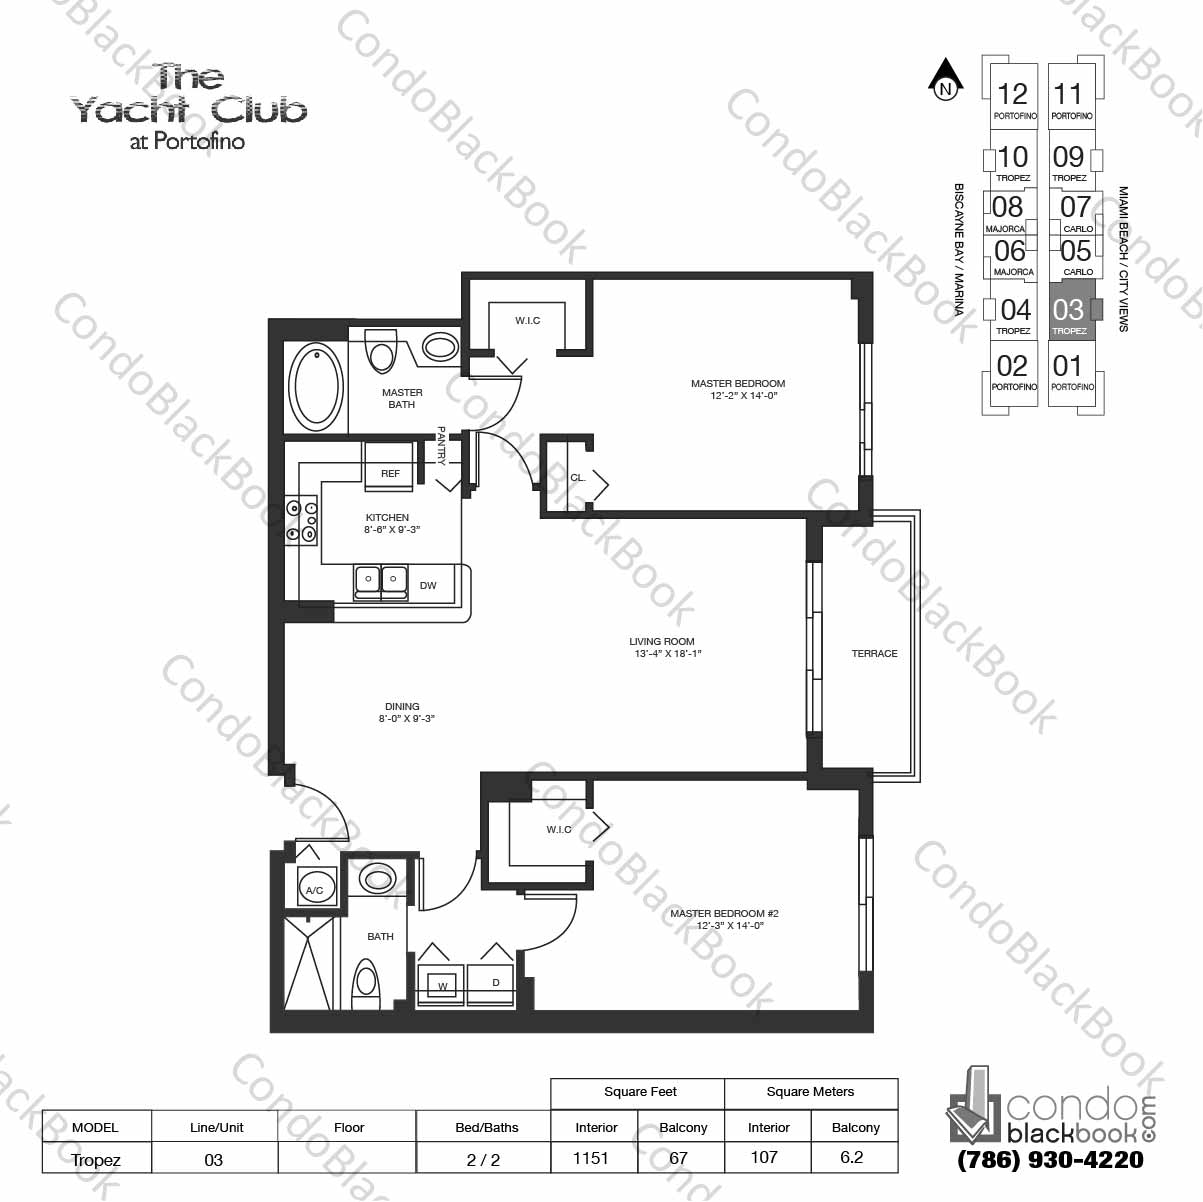 Floor plan for Yacht Club at Portofino South Beach Miami Beach, model Tropez, line 03,  2 / 2 bedrooms, 1151 sq ft